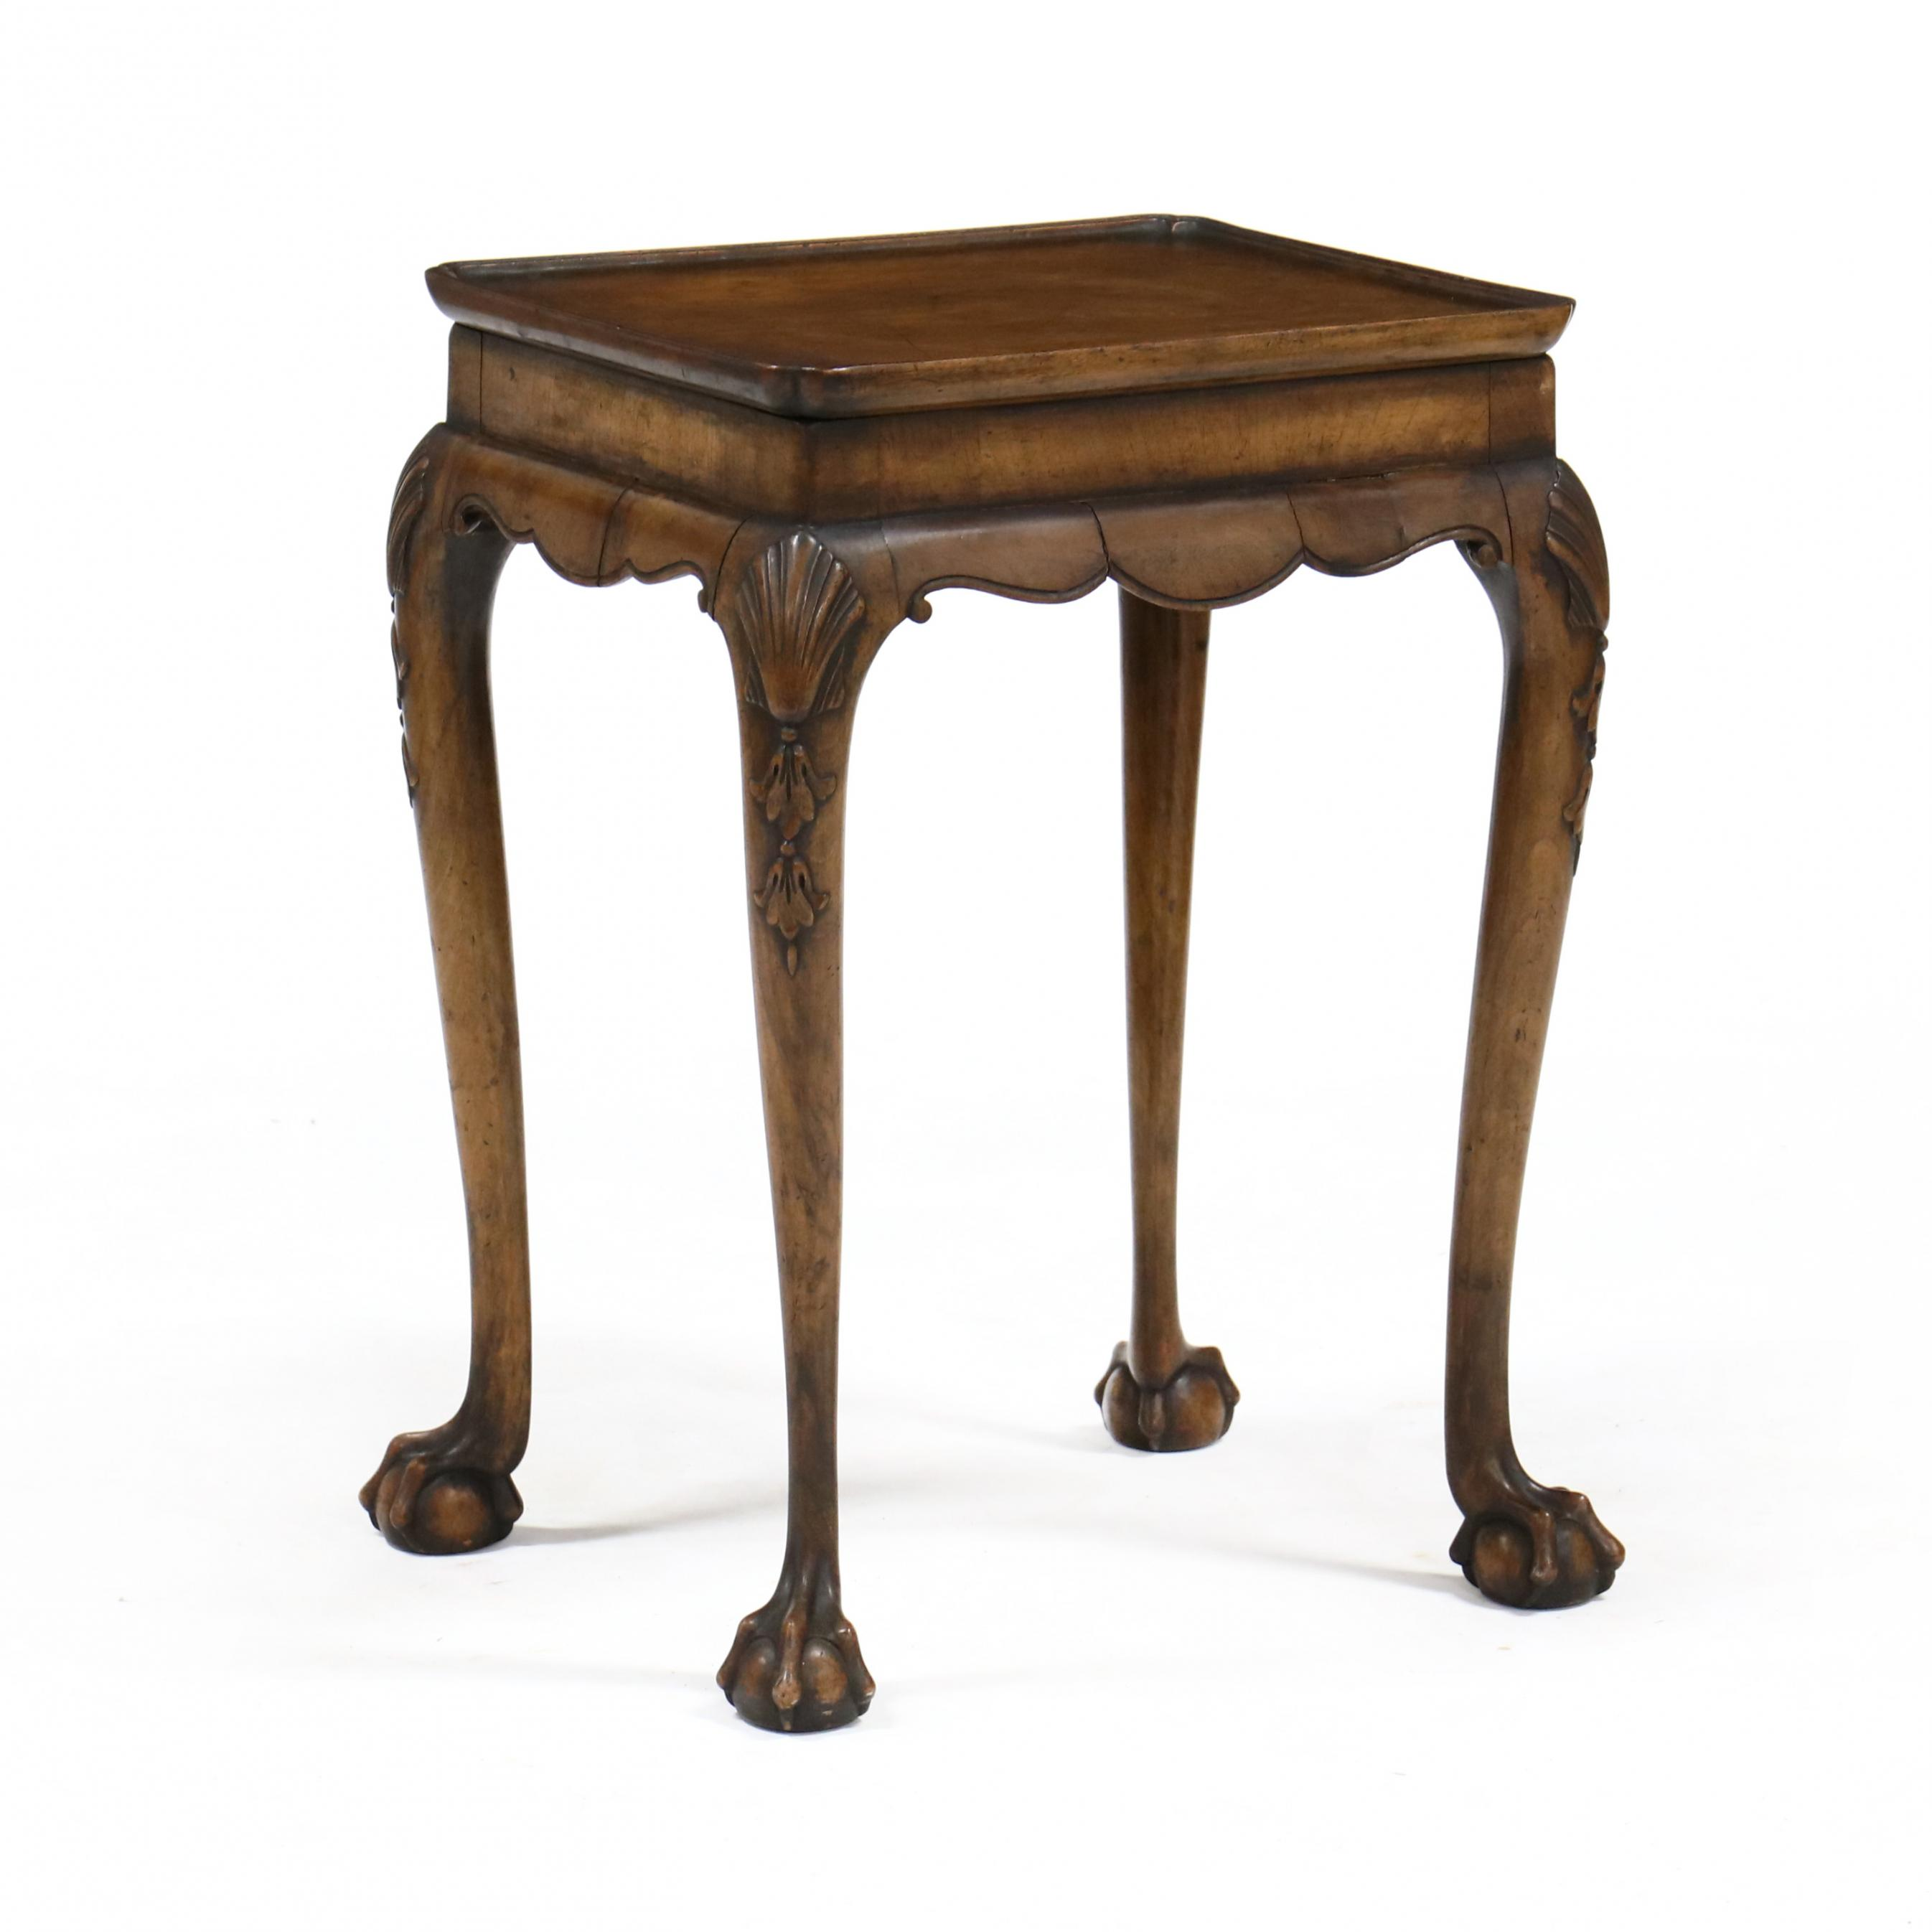 antique-english-chippendale-style-carved-diminutive-side-table